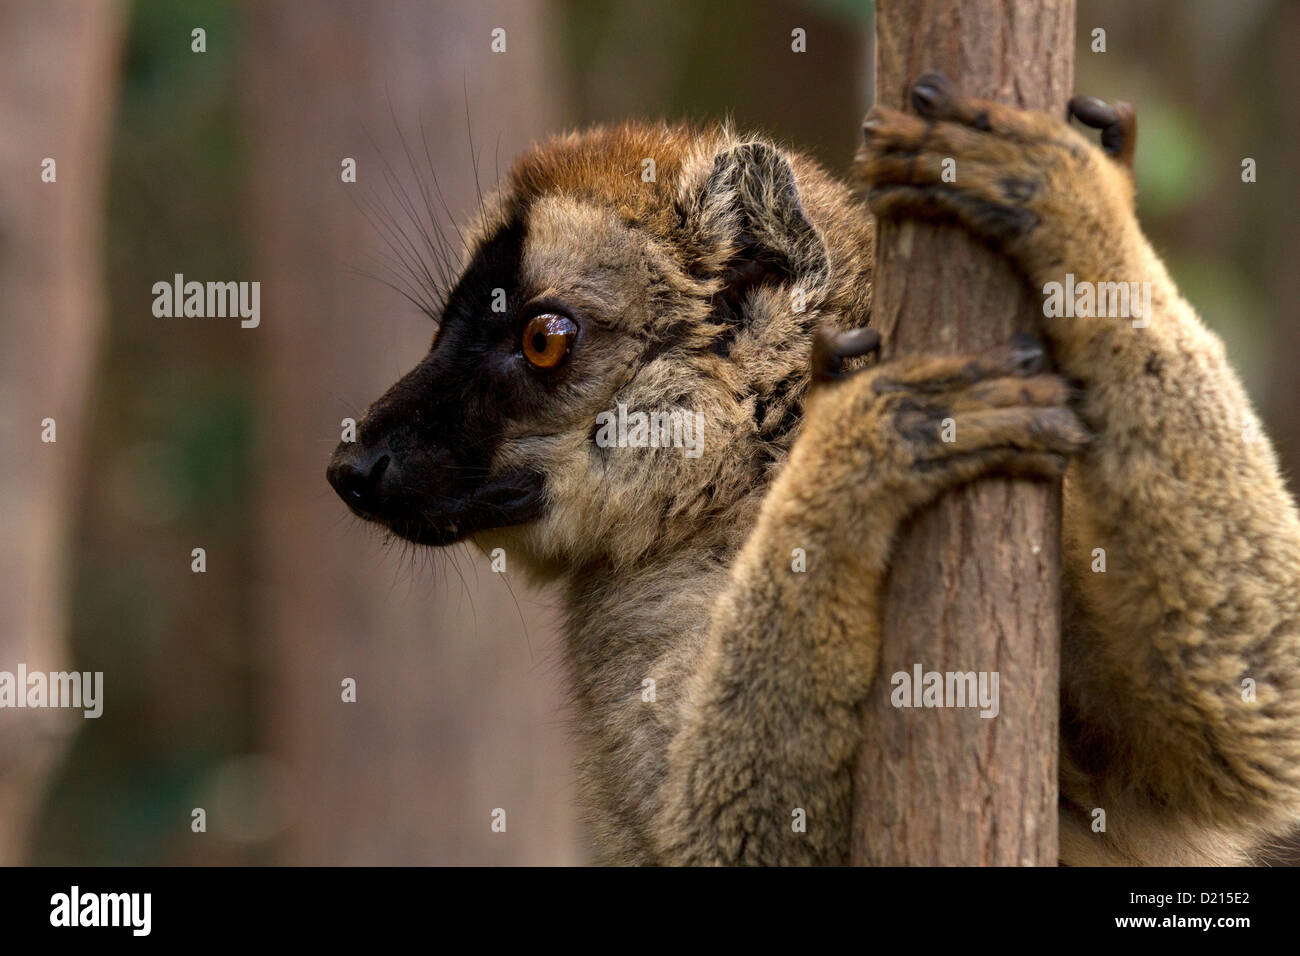 Common Brown Lemur, Eulemur fulvus, clinging to the tree - Stock Image